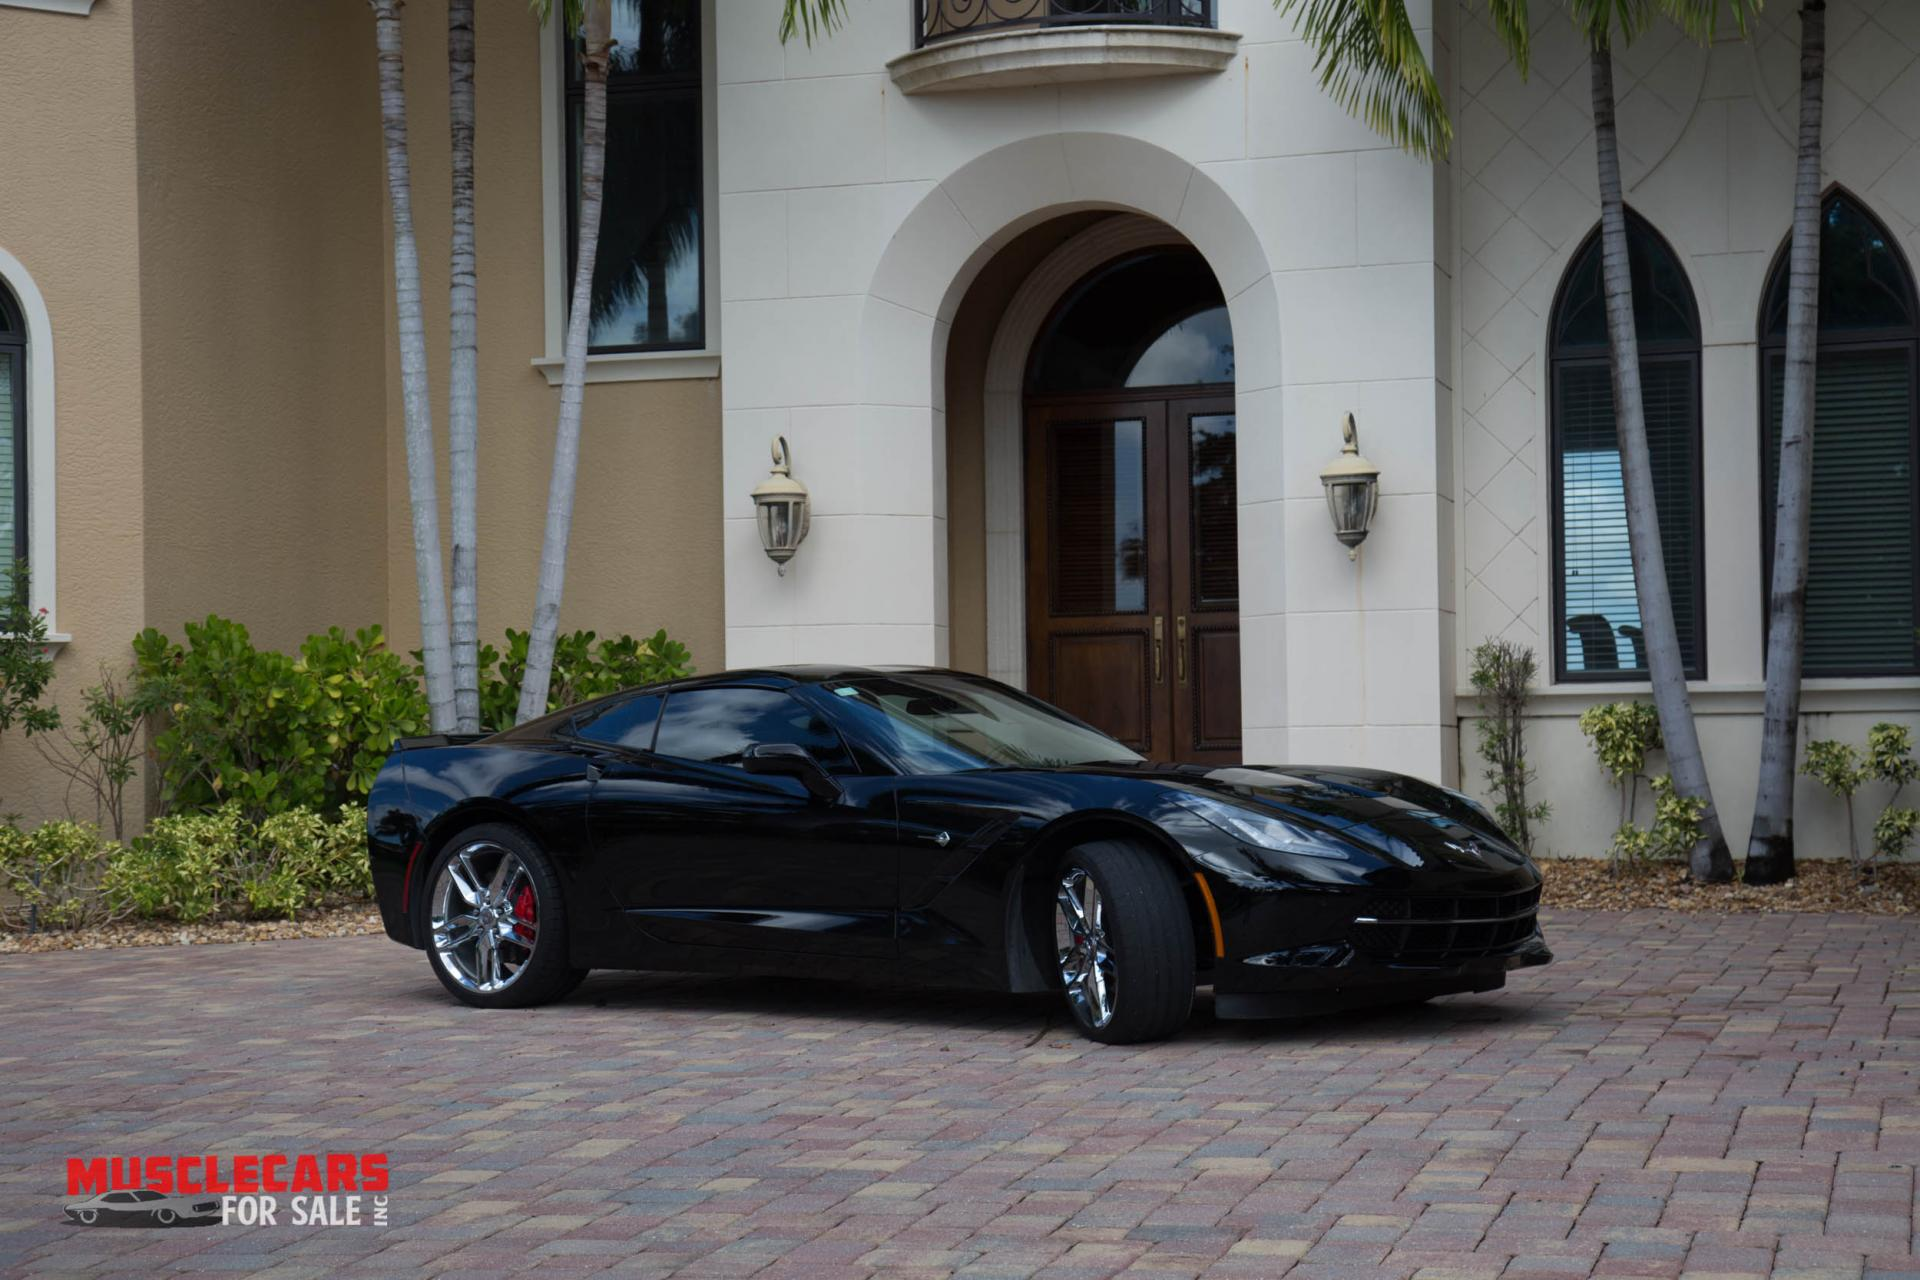 Used 2015 Chevrolet Corvette Stingray for sale Sold at Muscle Cars for Sale Inc. in Fort Myers FL 33912 1